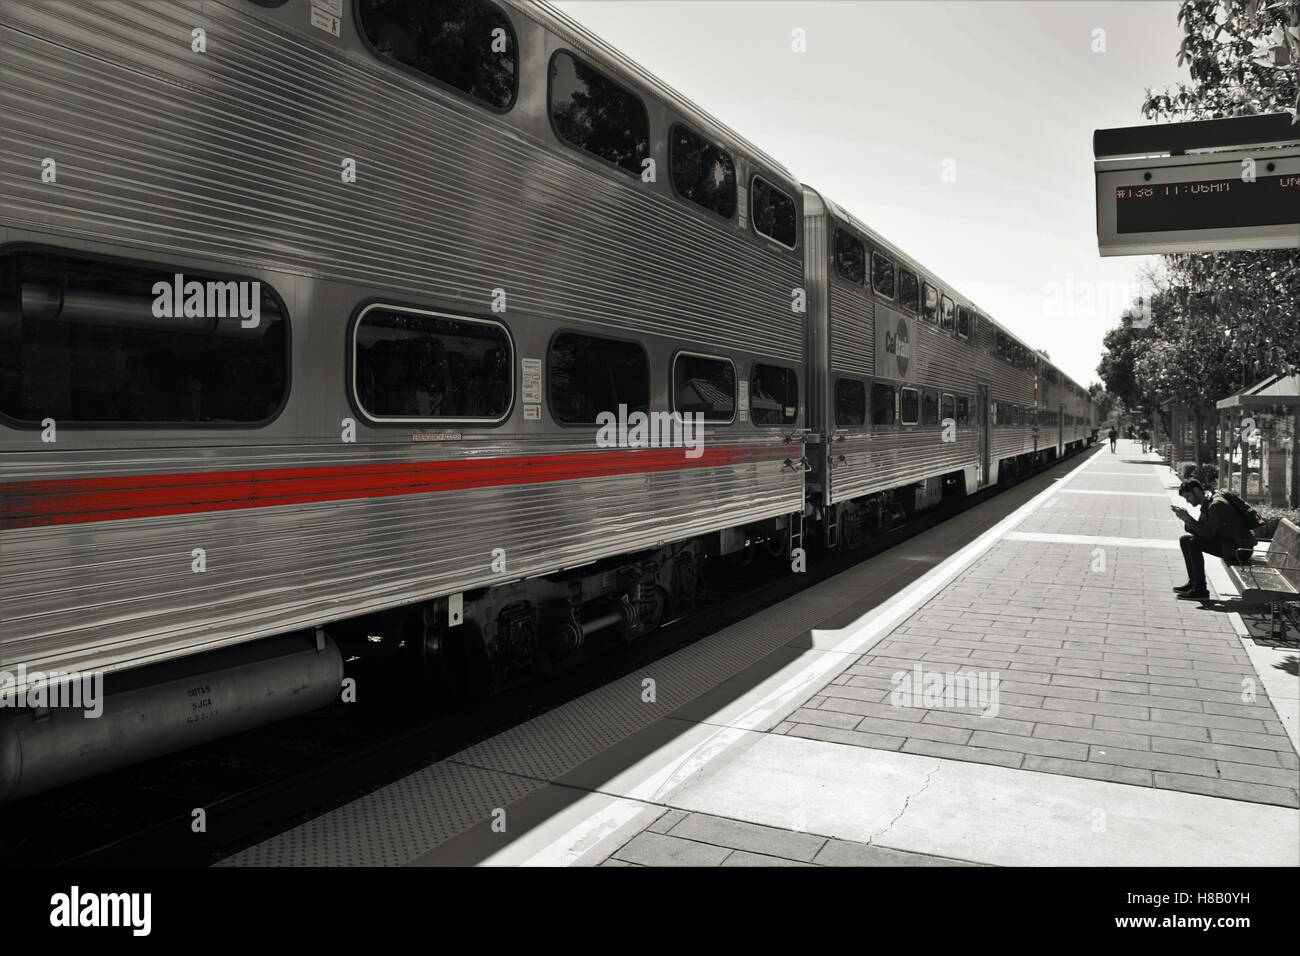 Long train with red stripe at platform in black and white Stock Photo